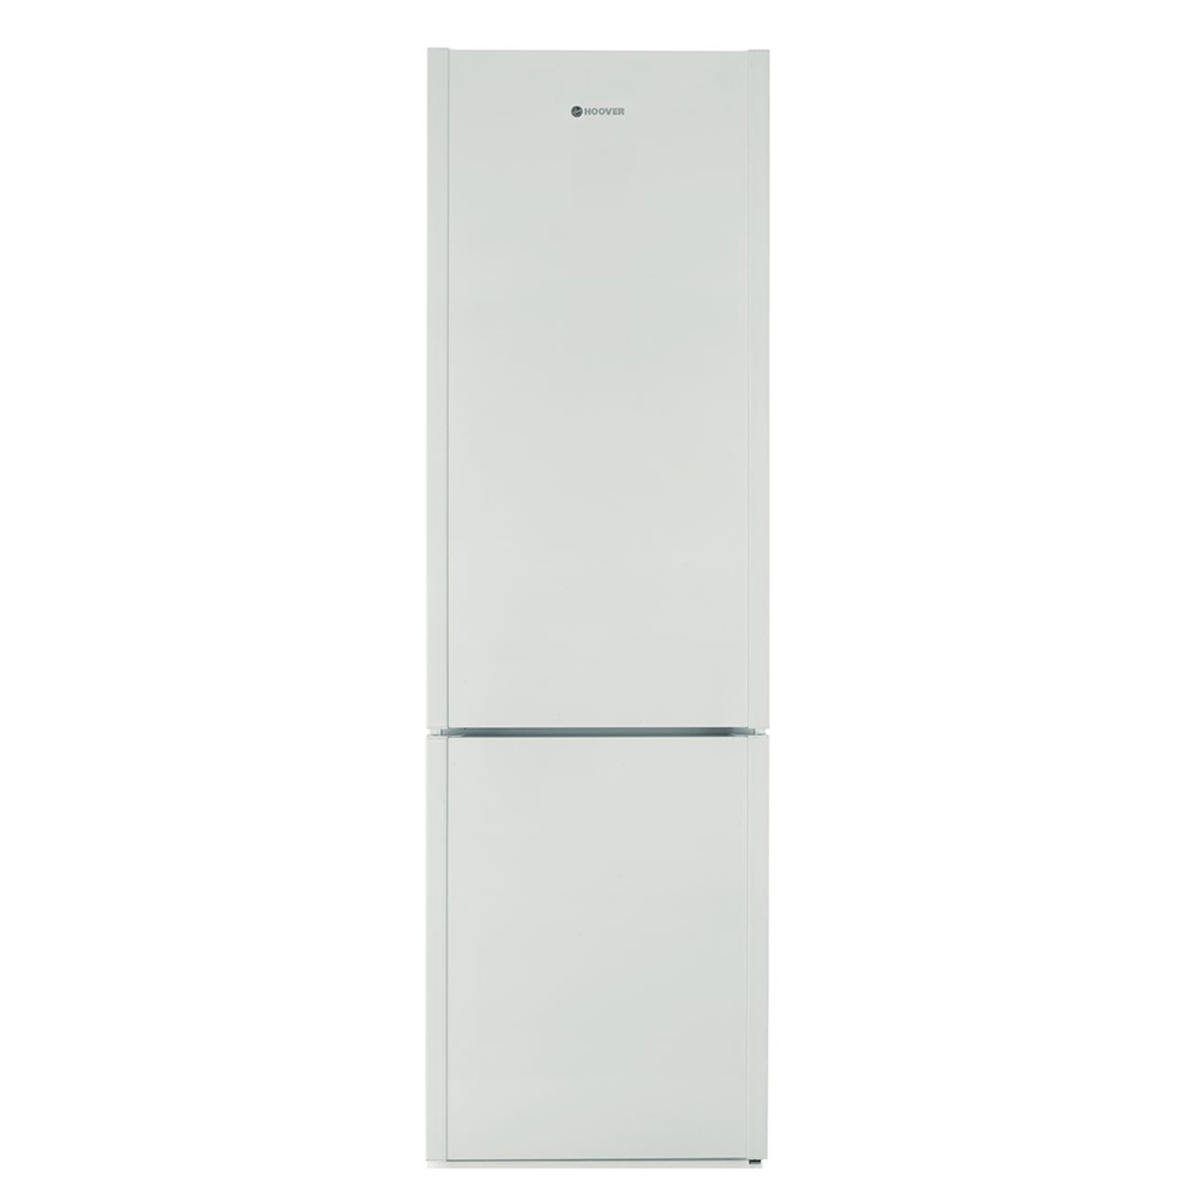 Hoover Hvbfp6182w Frost Free A Rated Fridge Freezer